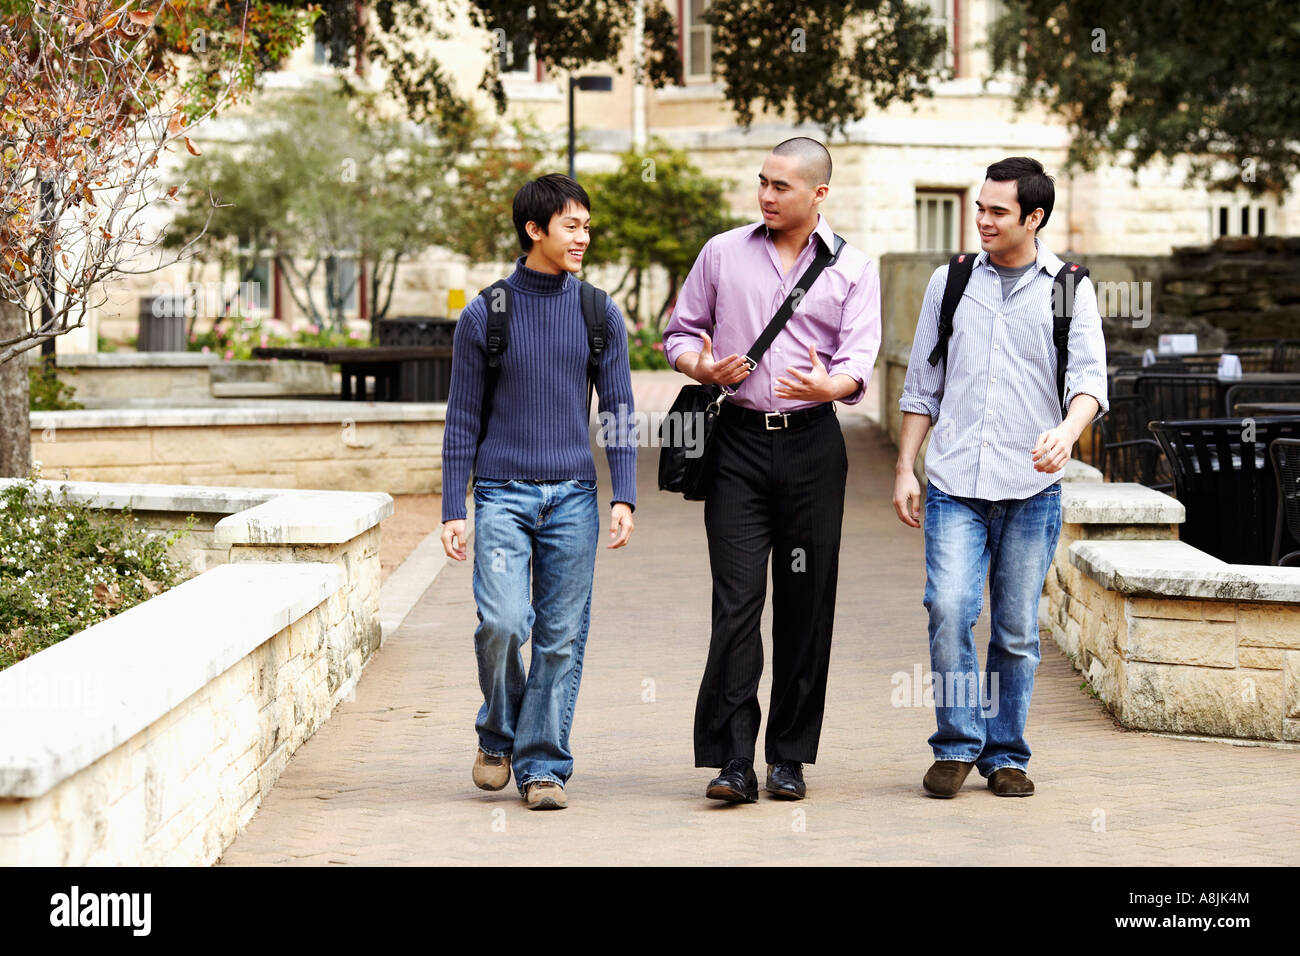 Three young men walking in a college campus and talking - Stock Image